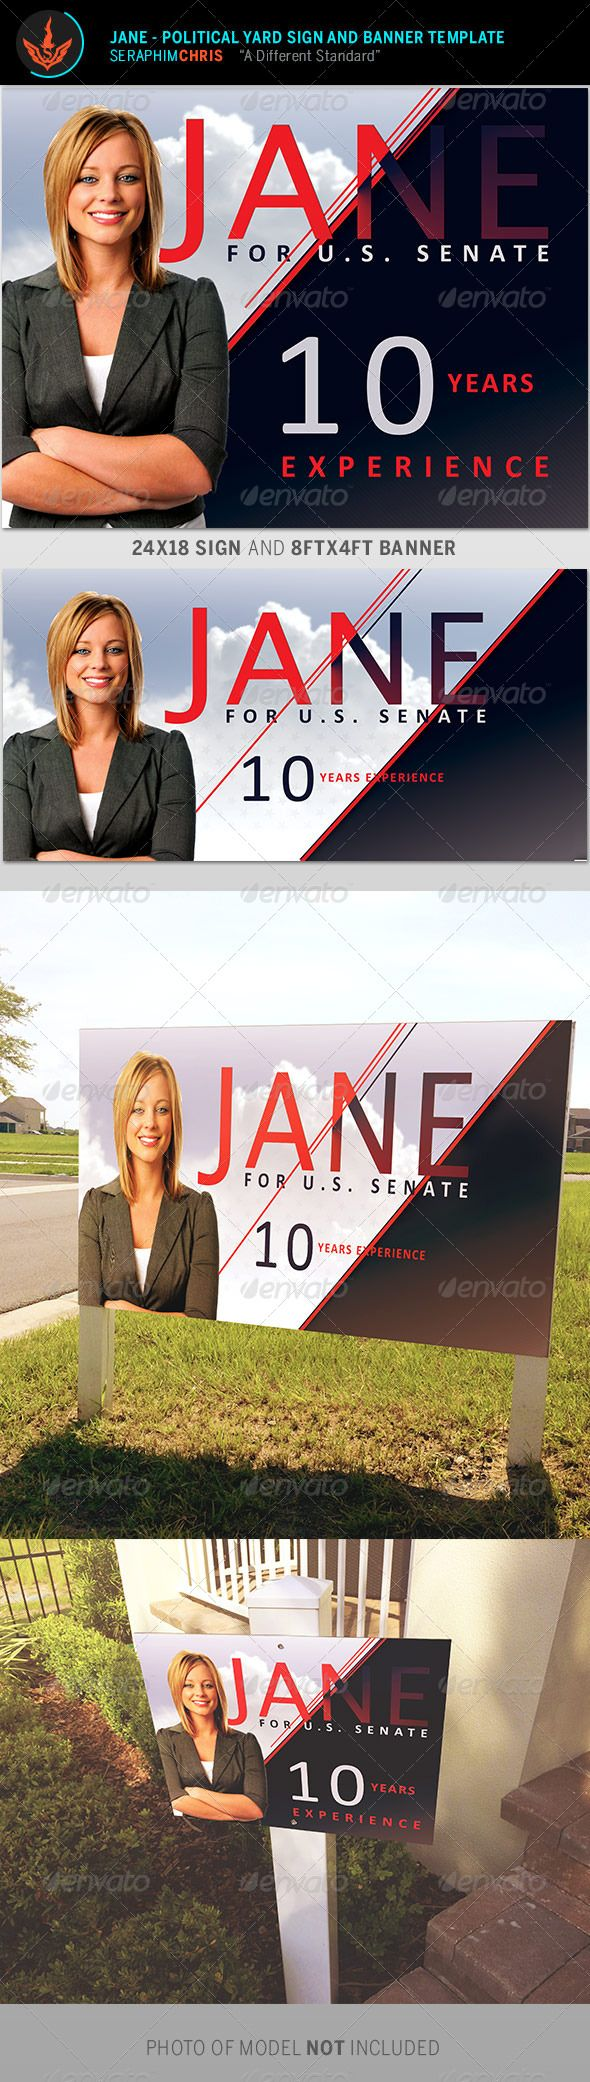 With this Jane – Political Yard Sign and Banner Template you'll have the highest quality presentation. You'll find this file easy to use. This file is exclusive to graphicriver.net